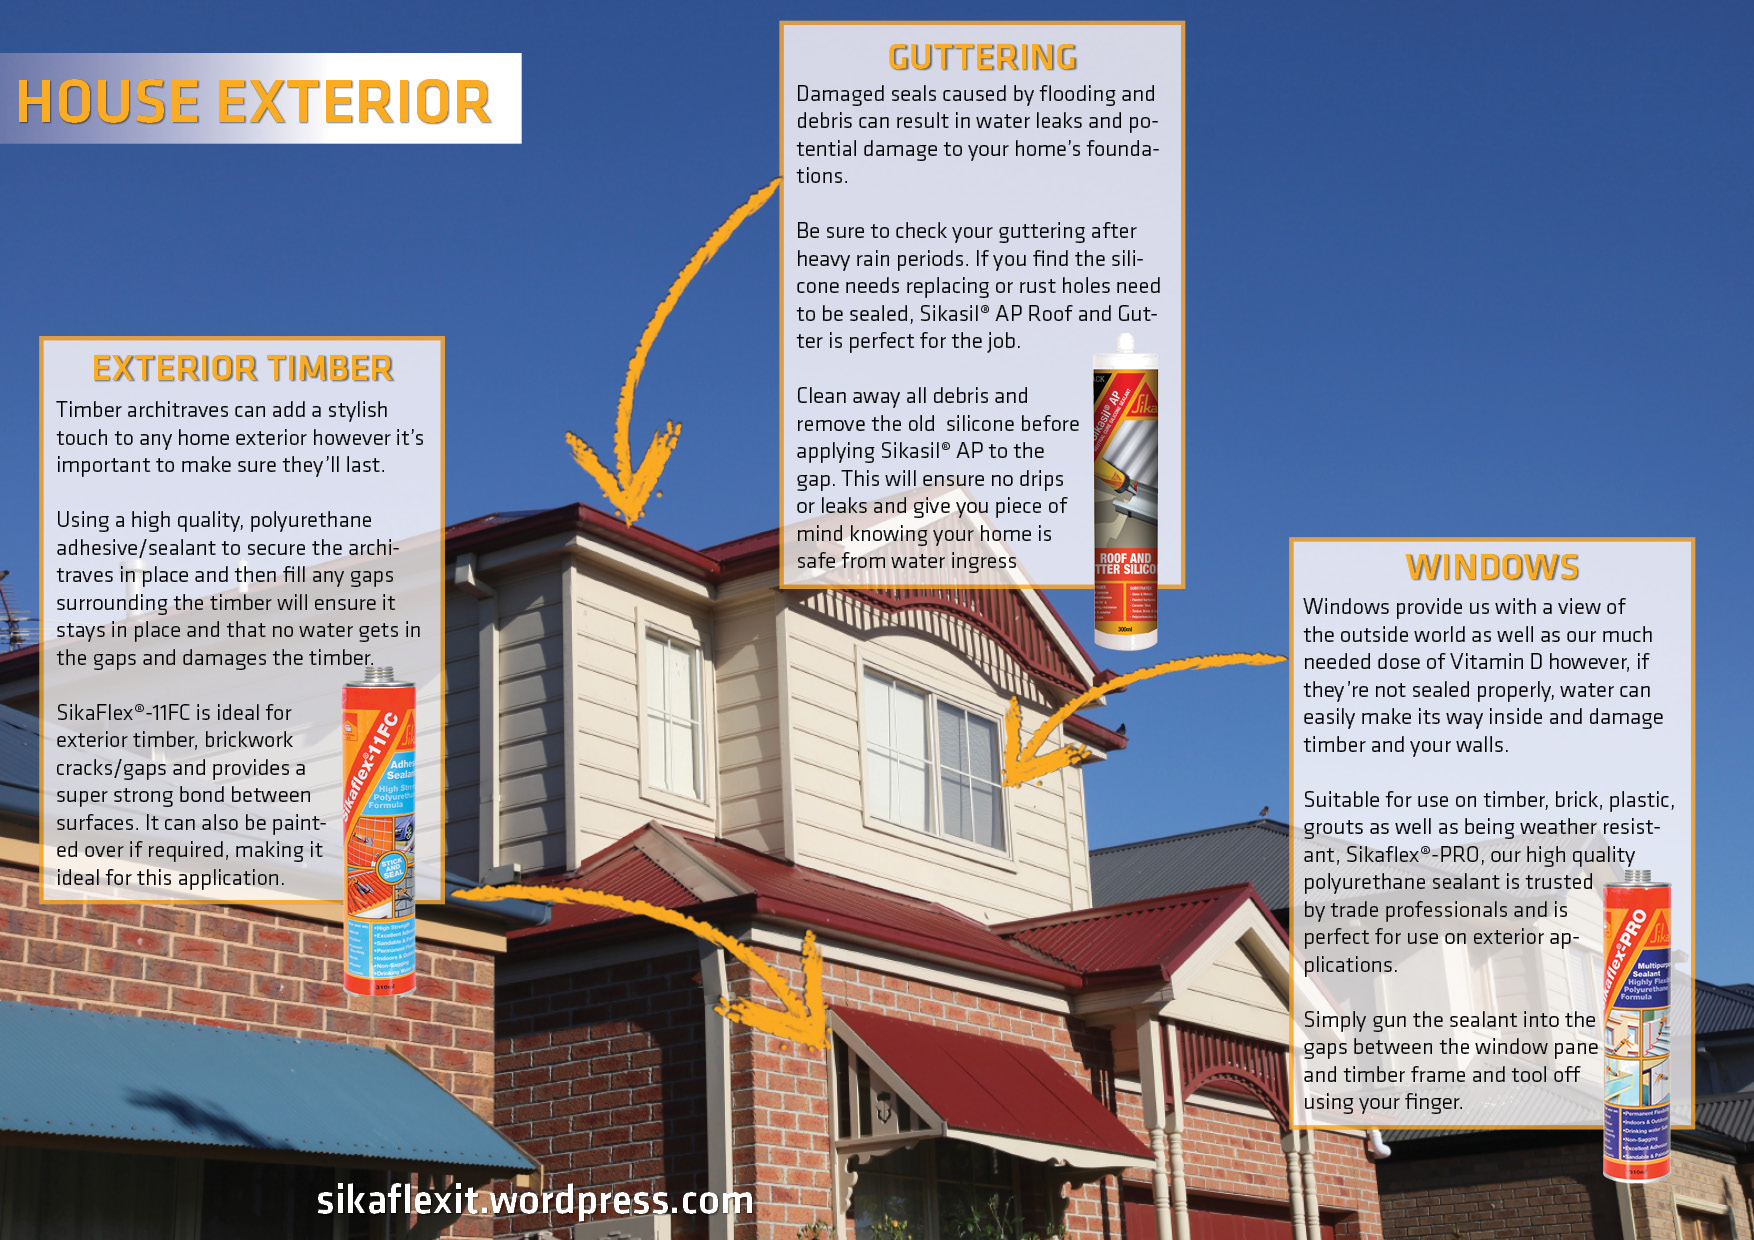 Where to use sika products on your house exterior sika - What kind of caulk for exterior windows ...